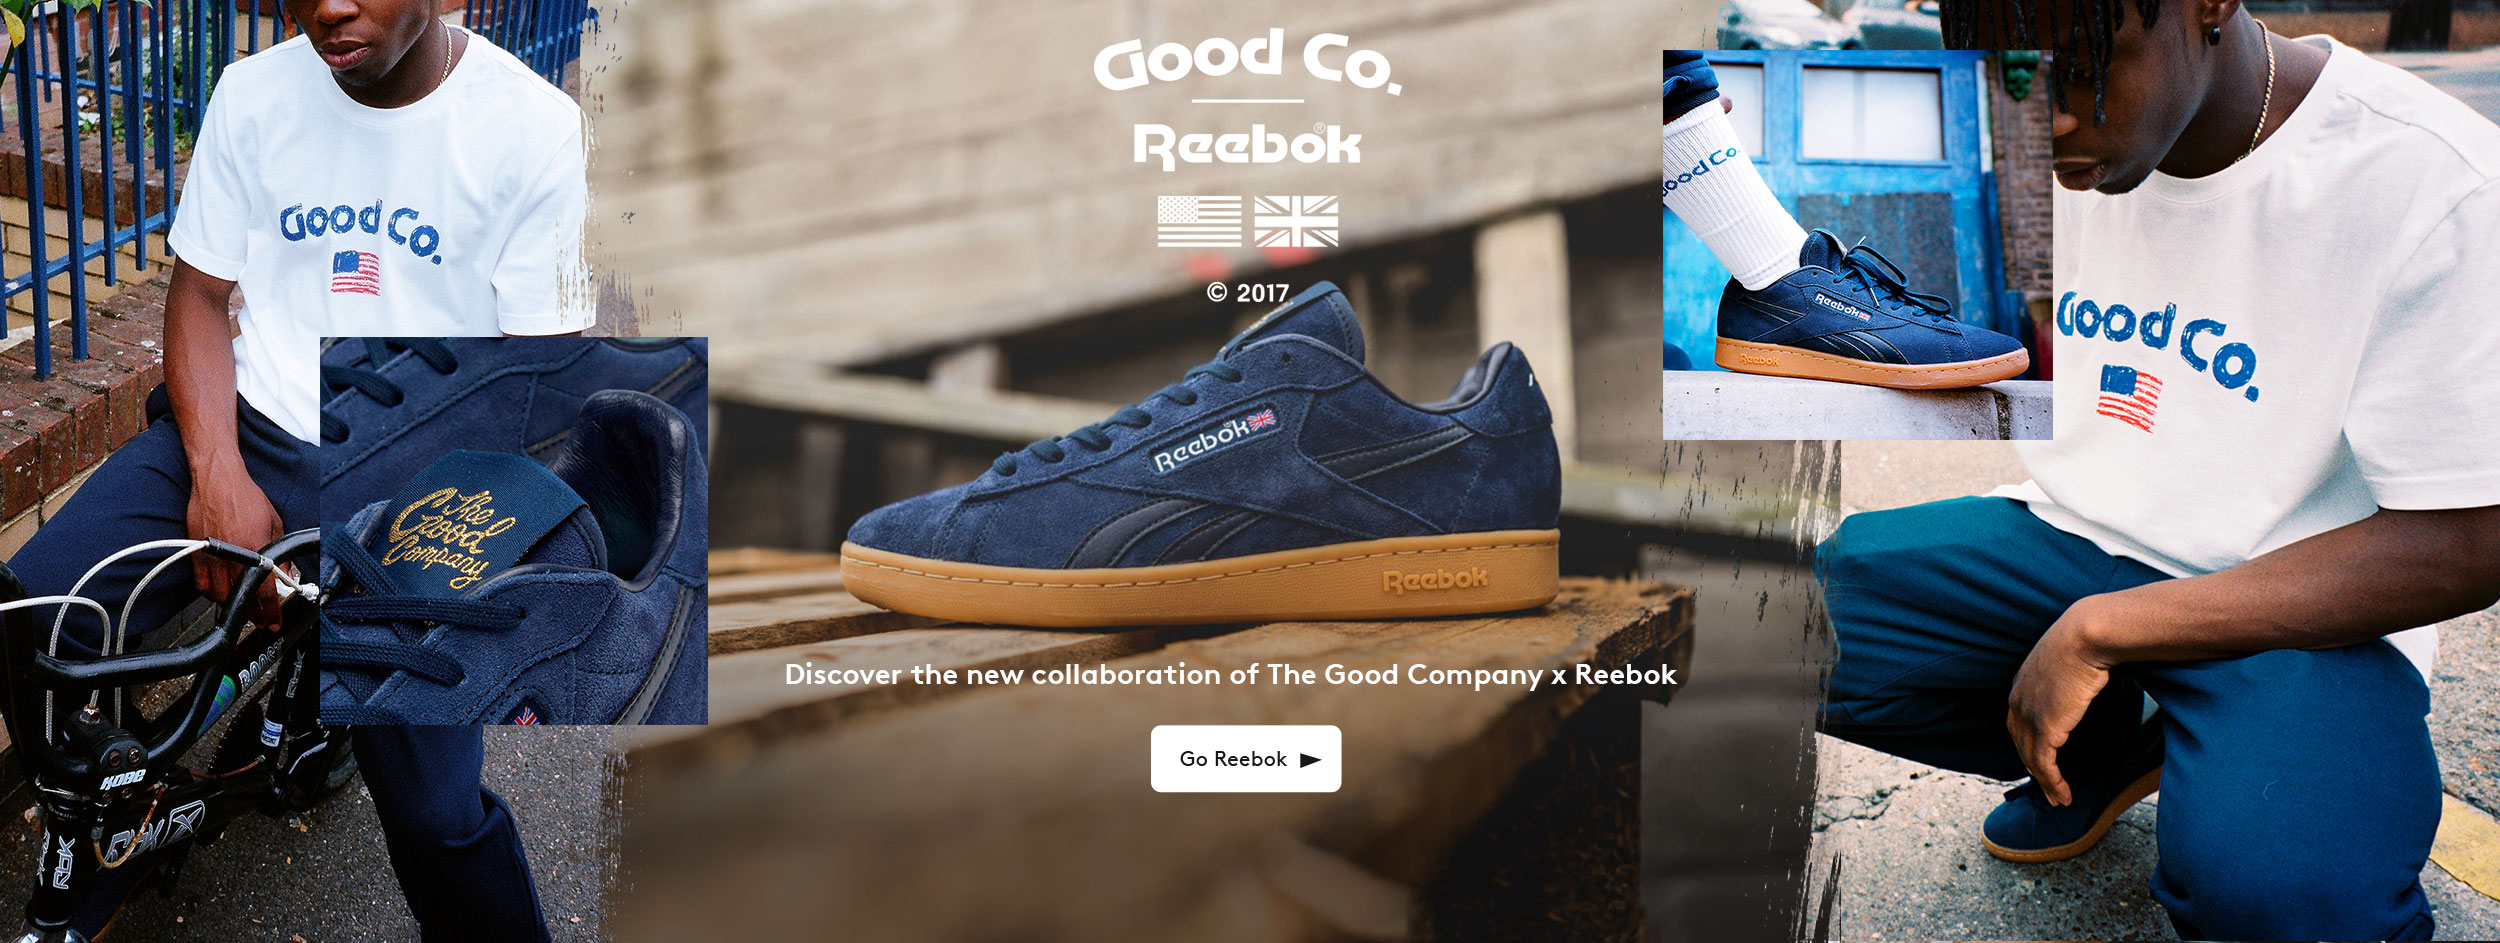 THE GOOD COMPANY X REEBOK